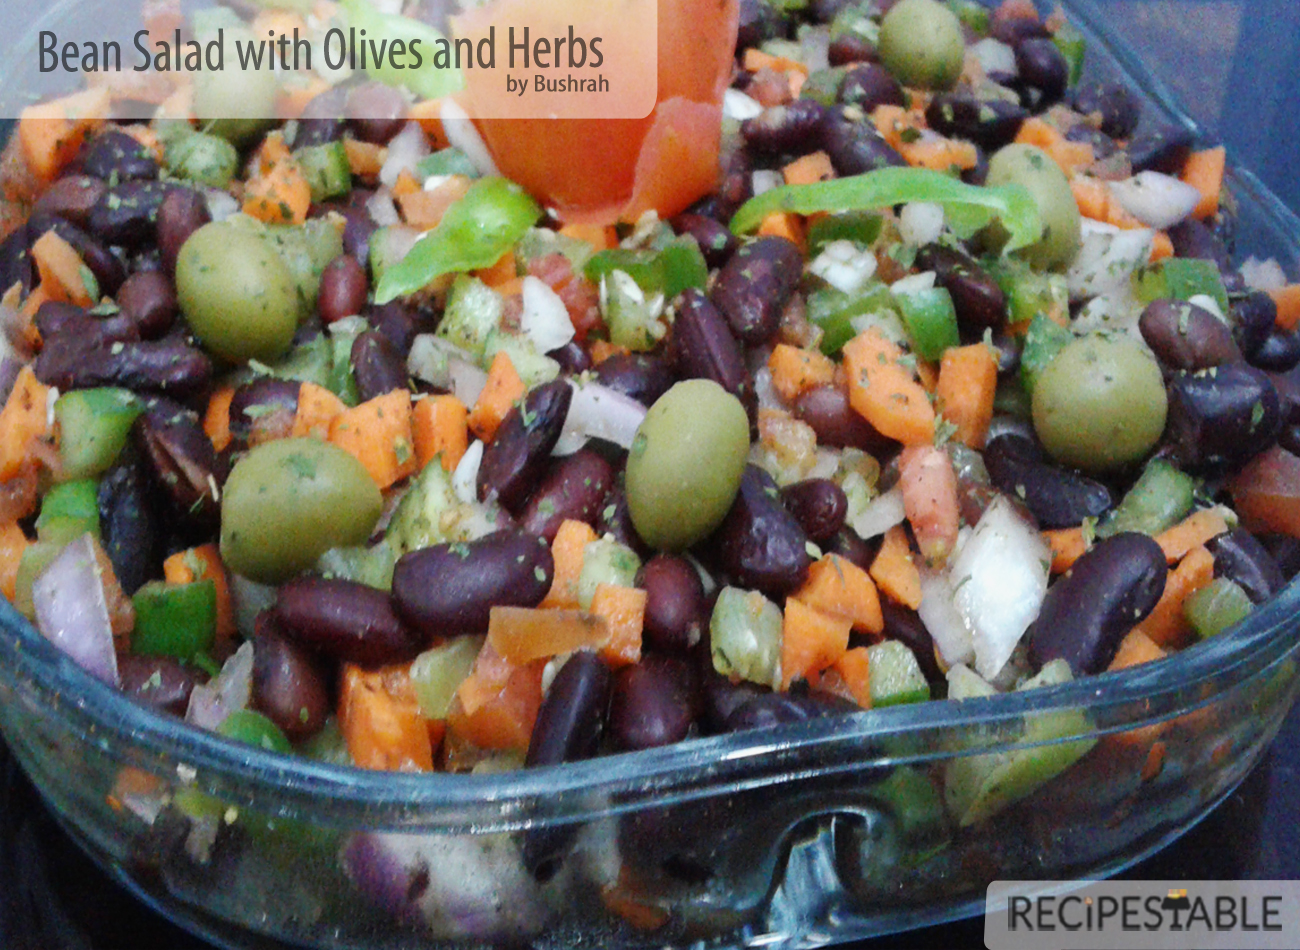 Bean Salad with Olives and Herbs